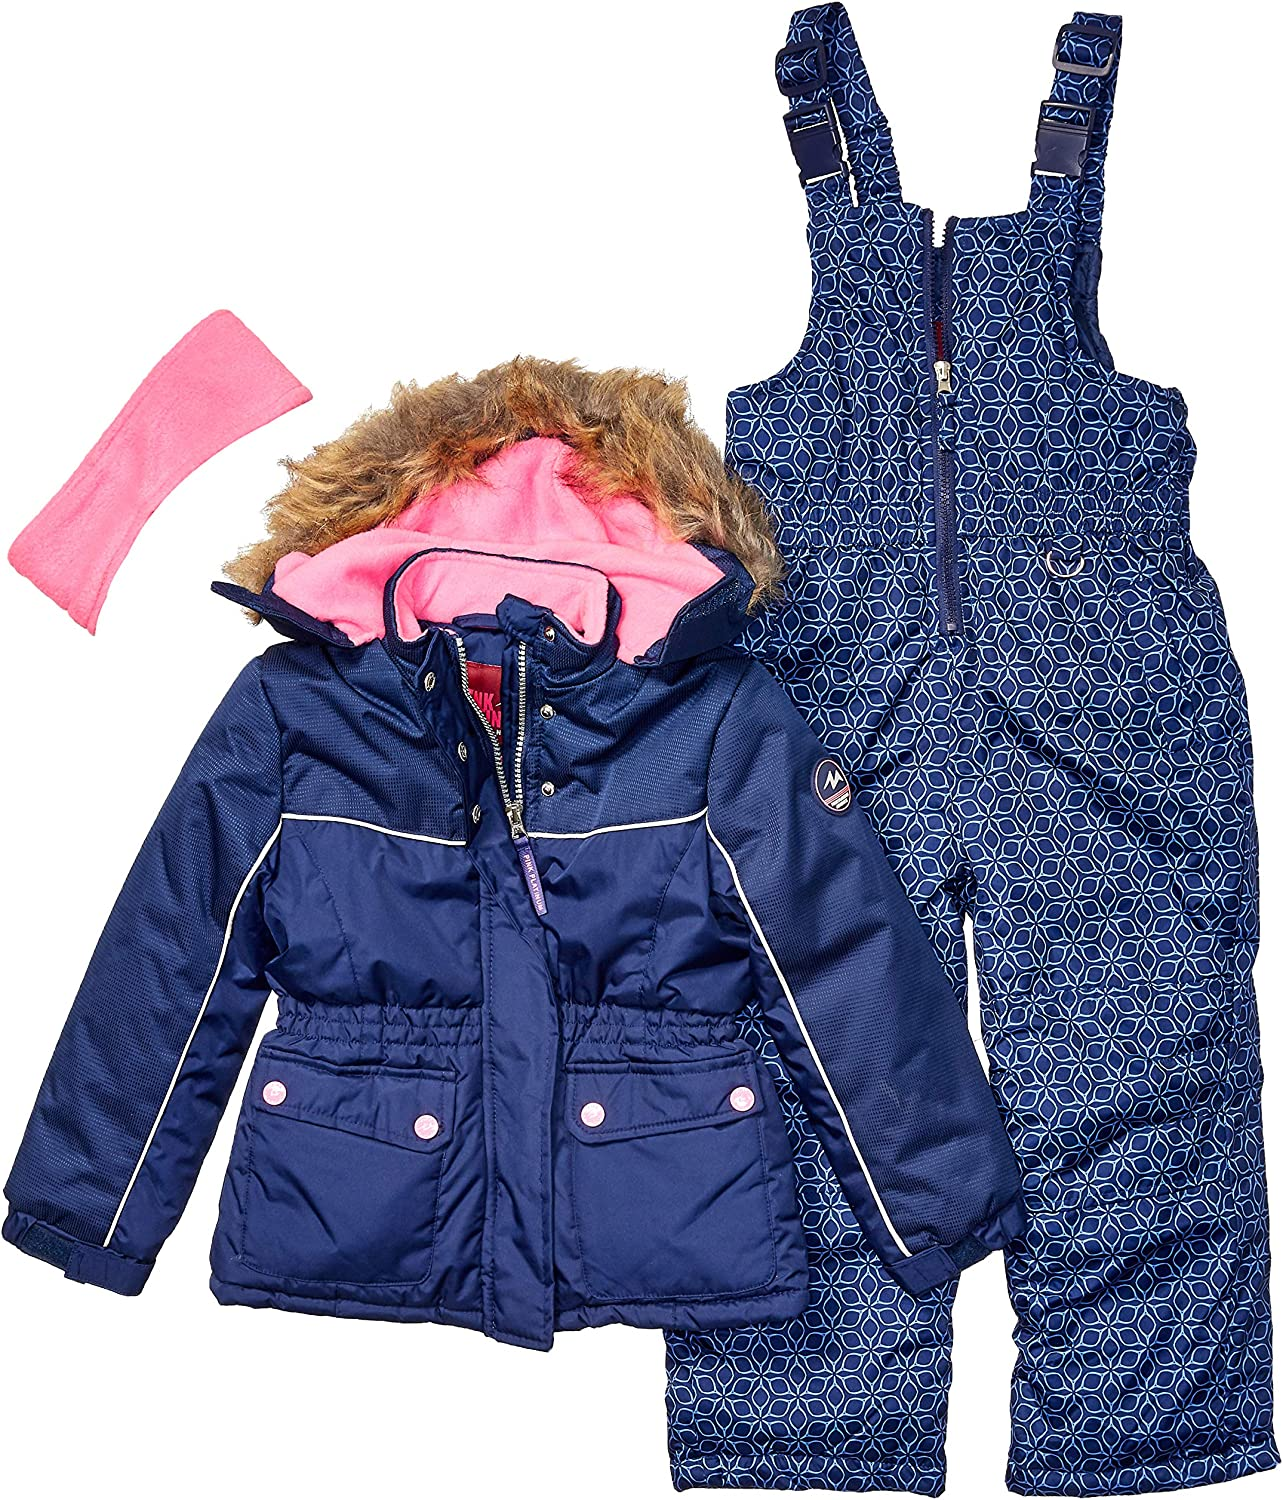 Amazon.com: Pink Platinum - Traje de nieve para niña: Clothing